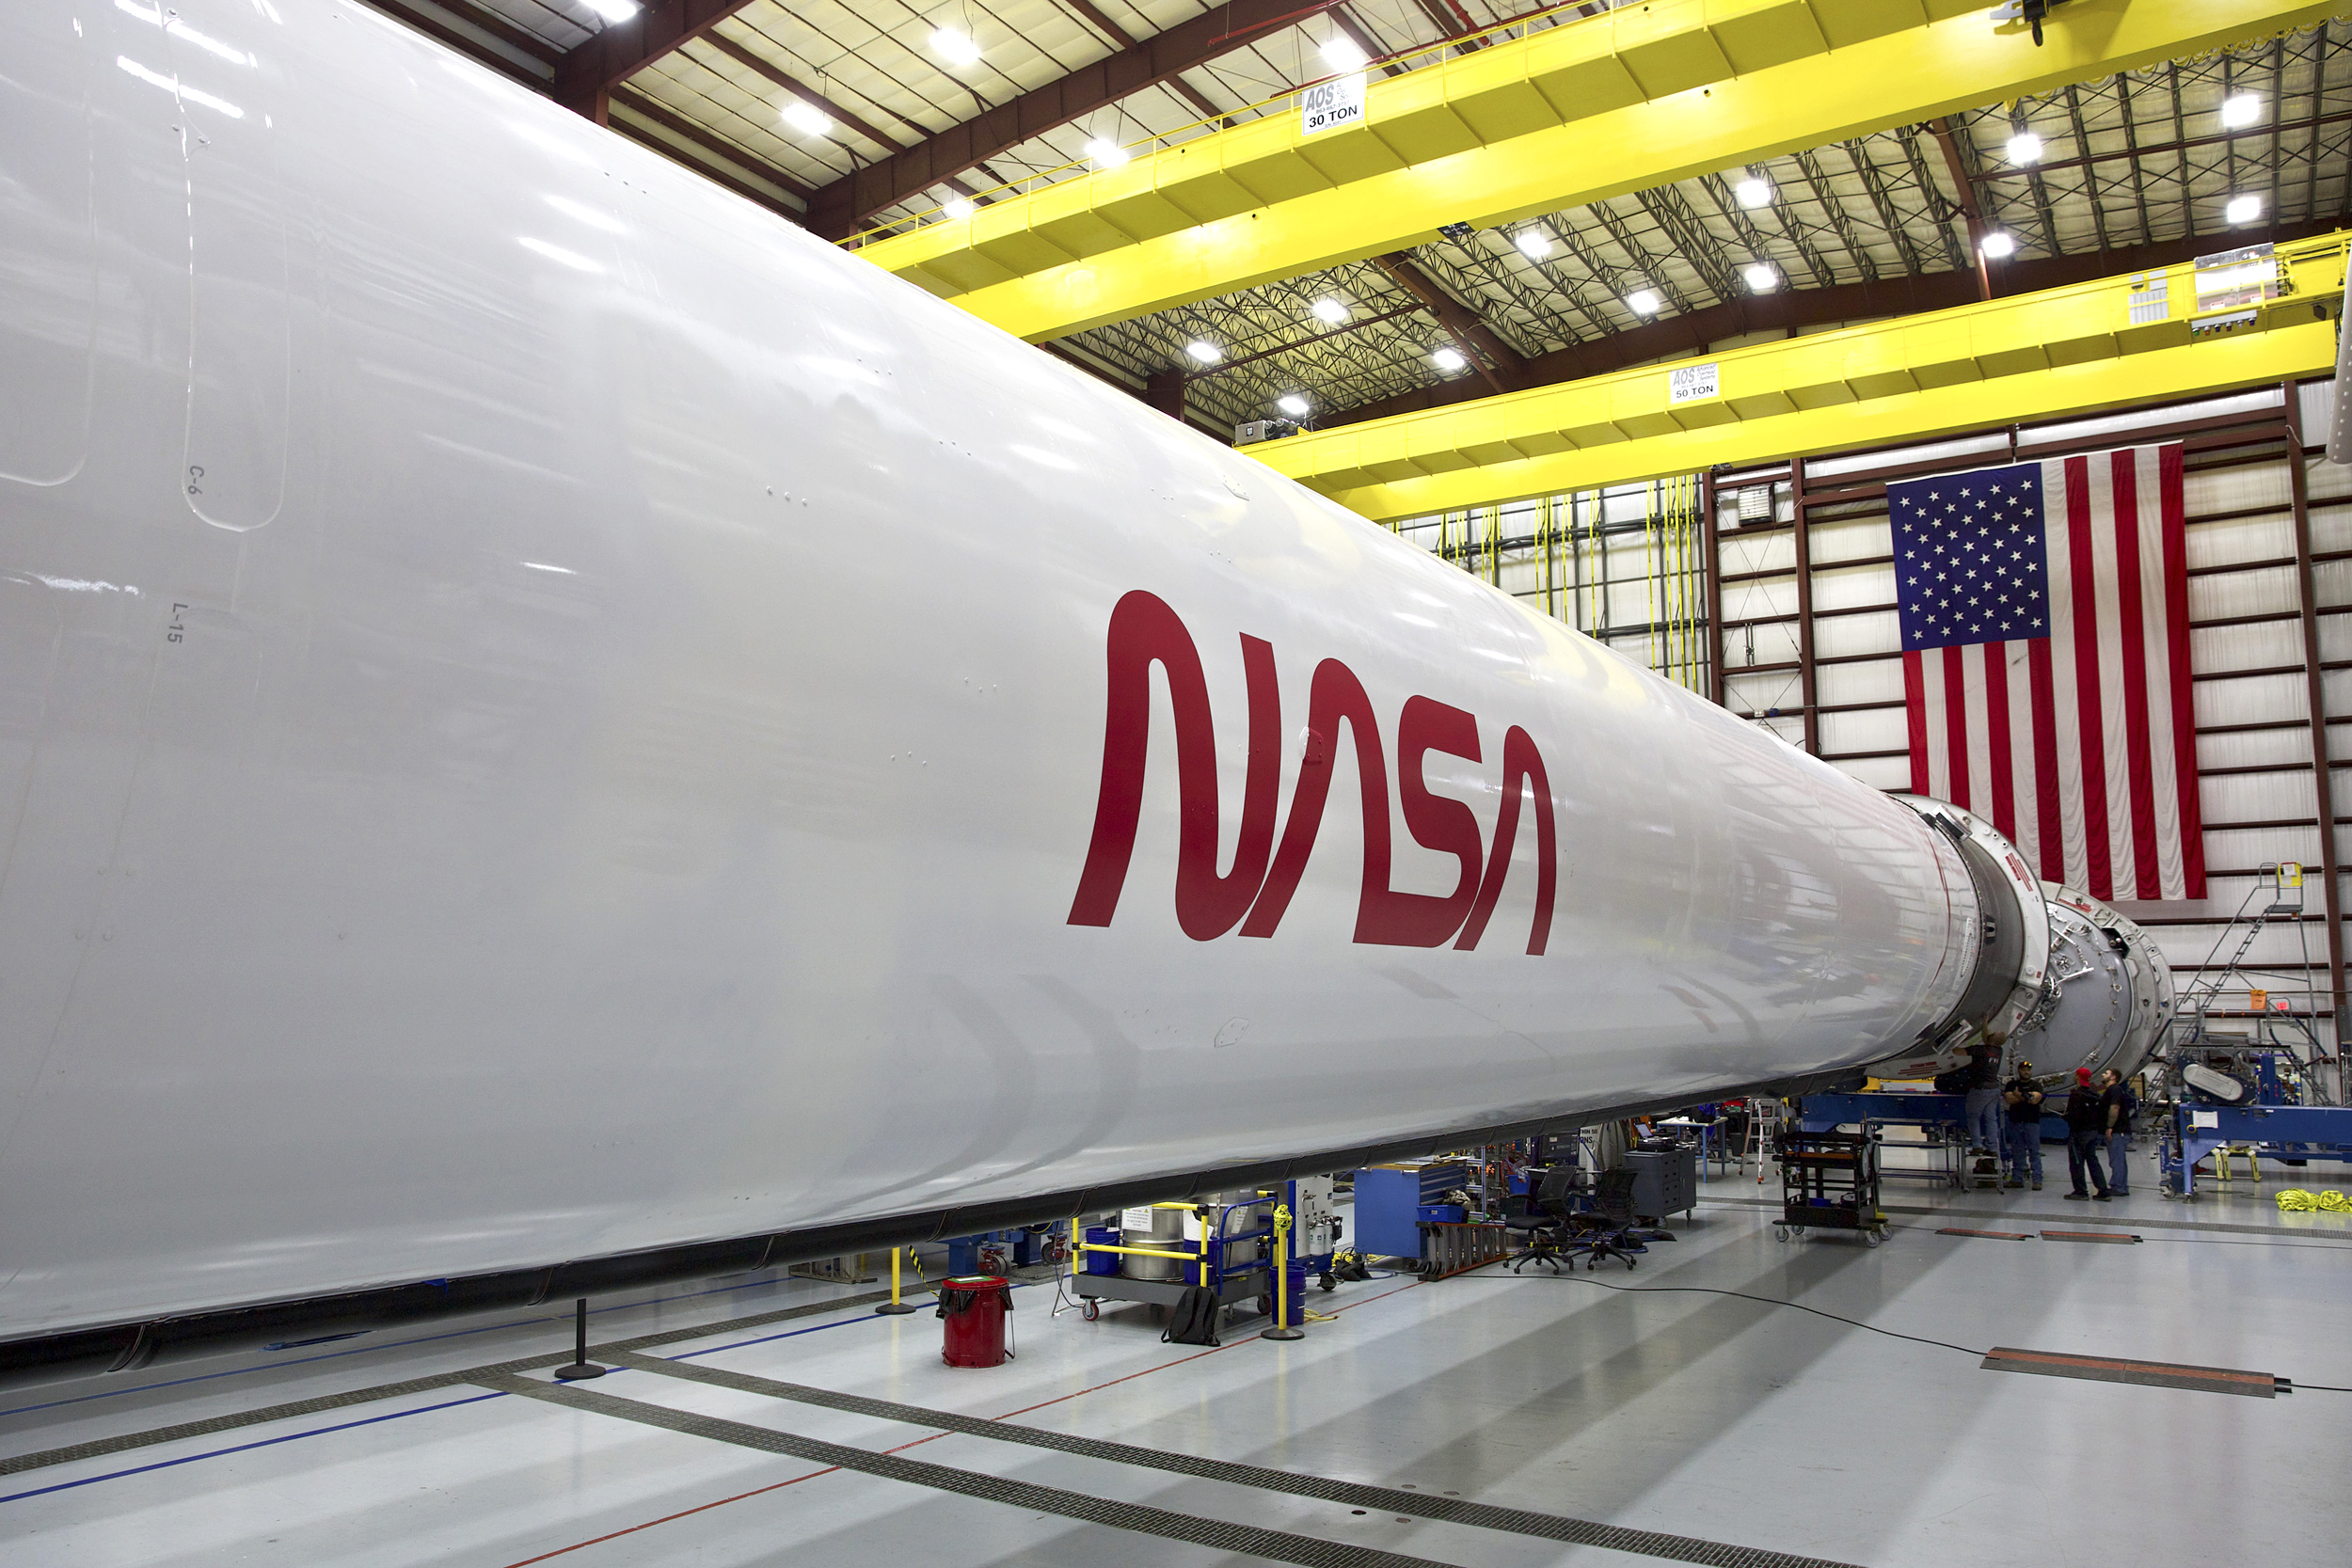 SpaceX to conduct first crewed launch in late May